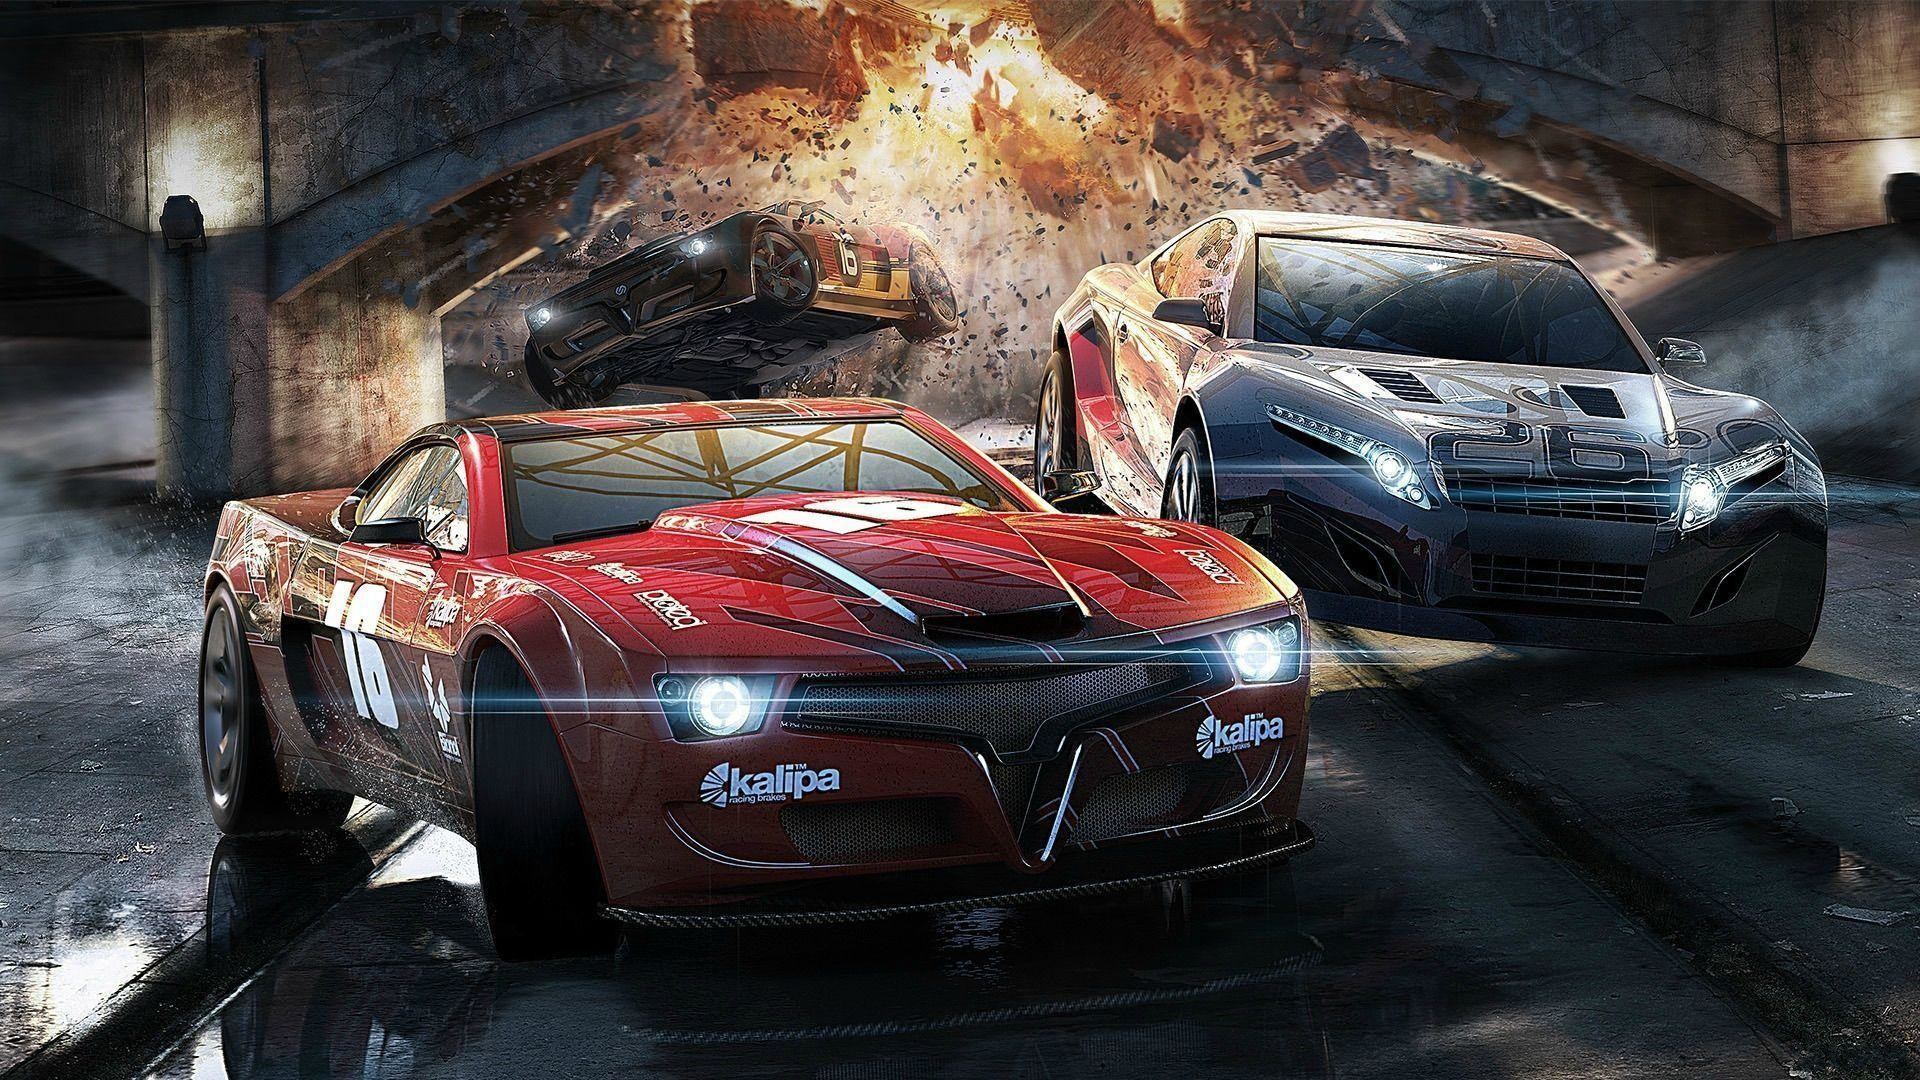 Res: 1920x1080, Street racing cars wallpapers   HD Cars Wallpapers